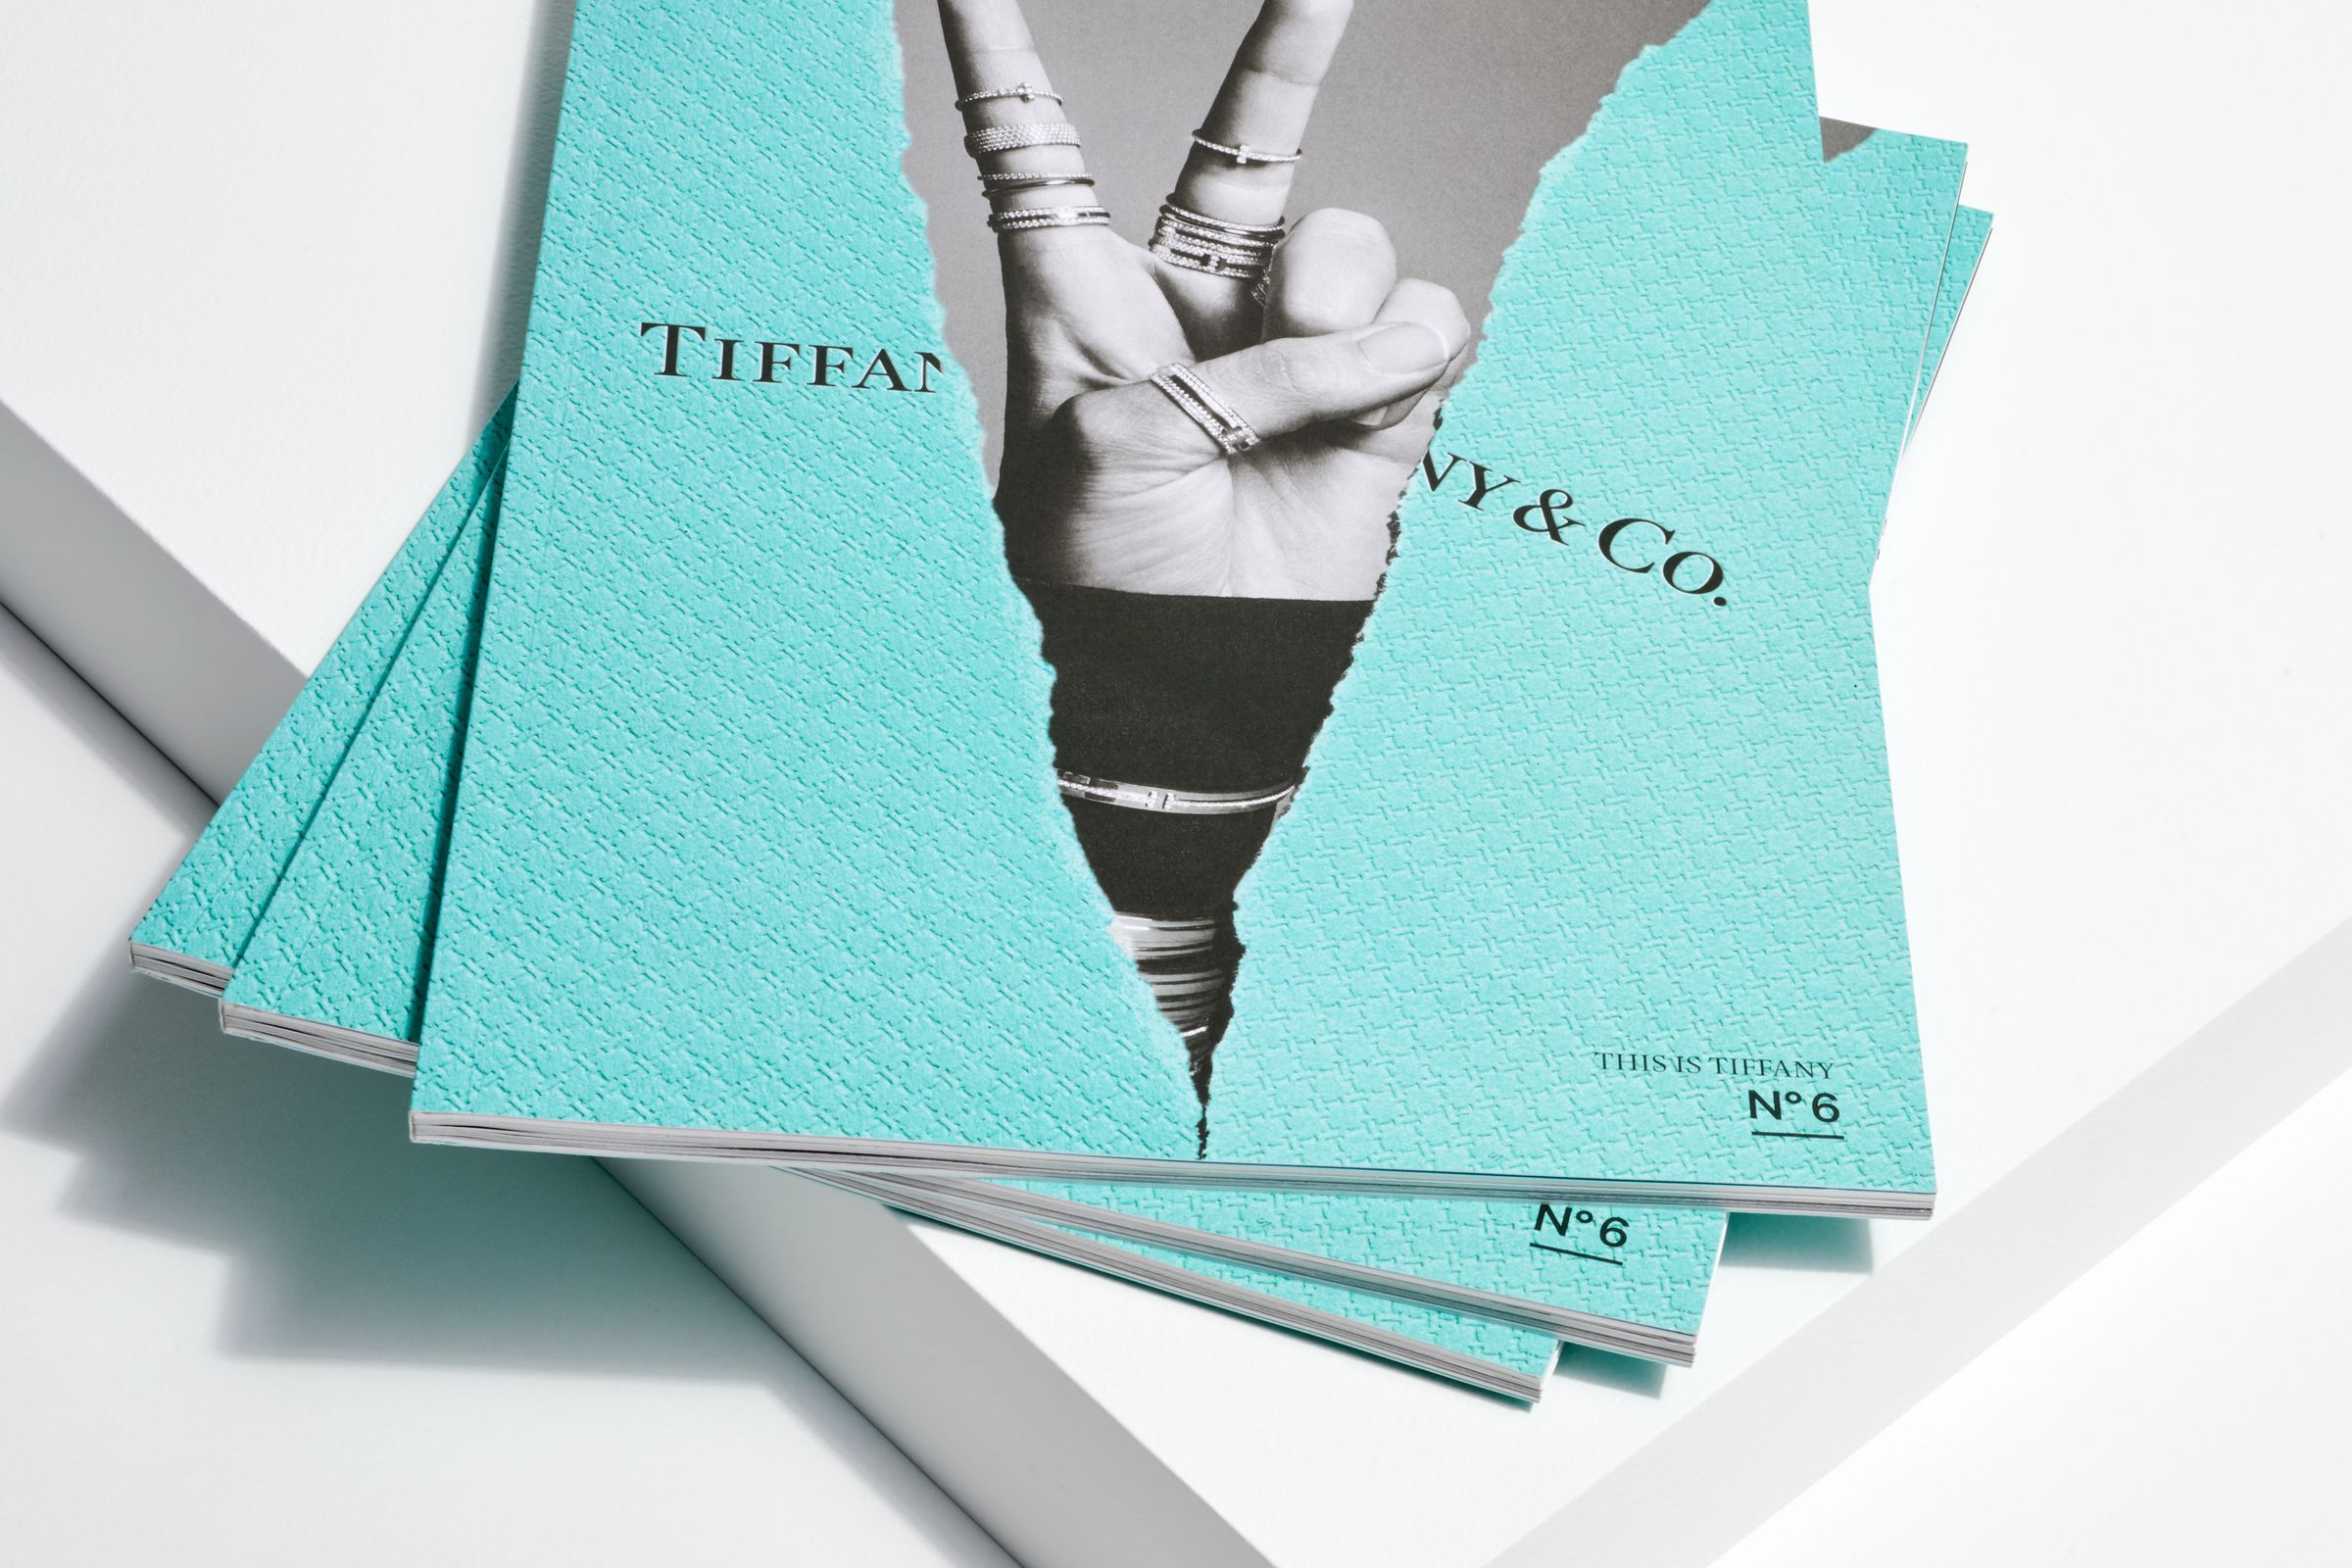 This is Tiffany magazine Issue 6 cover